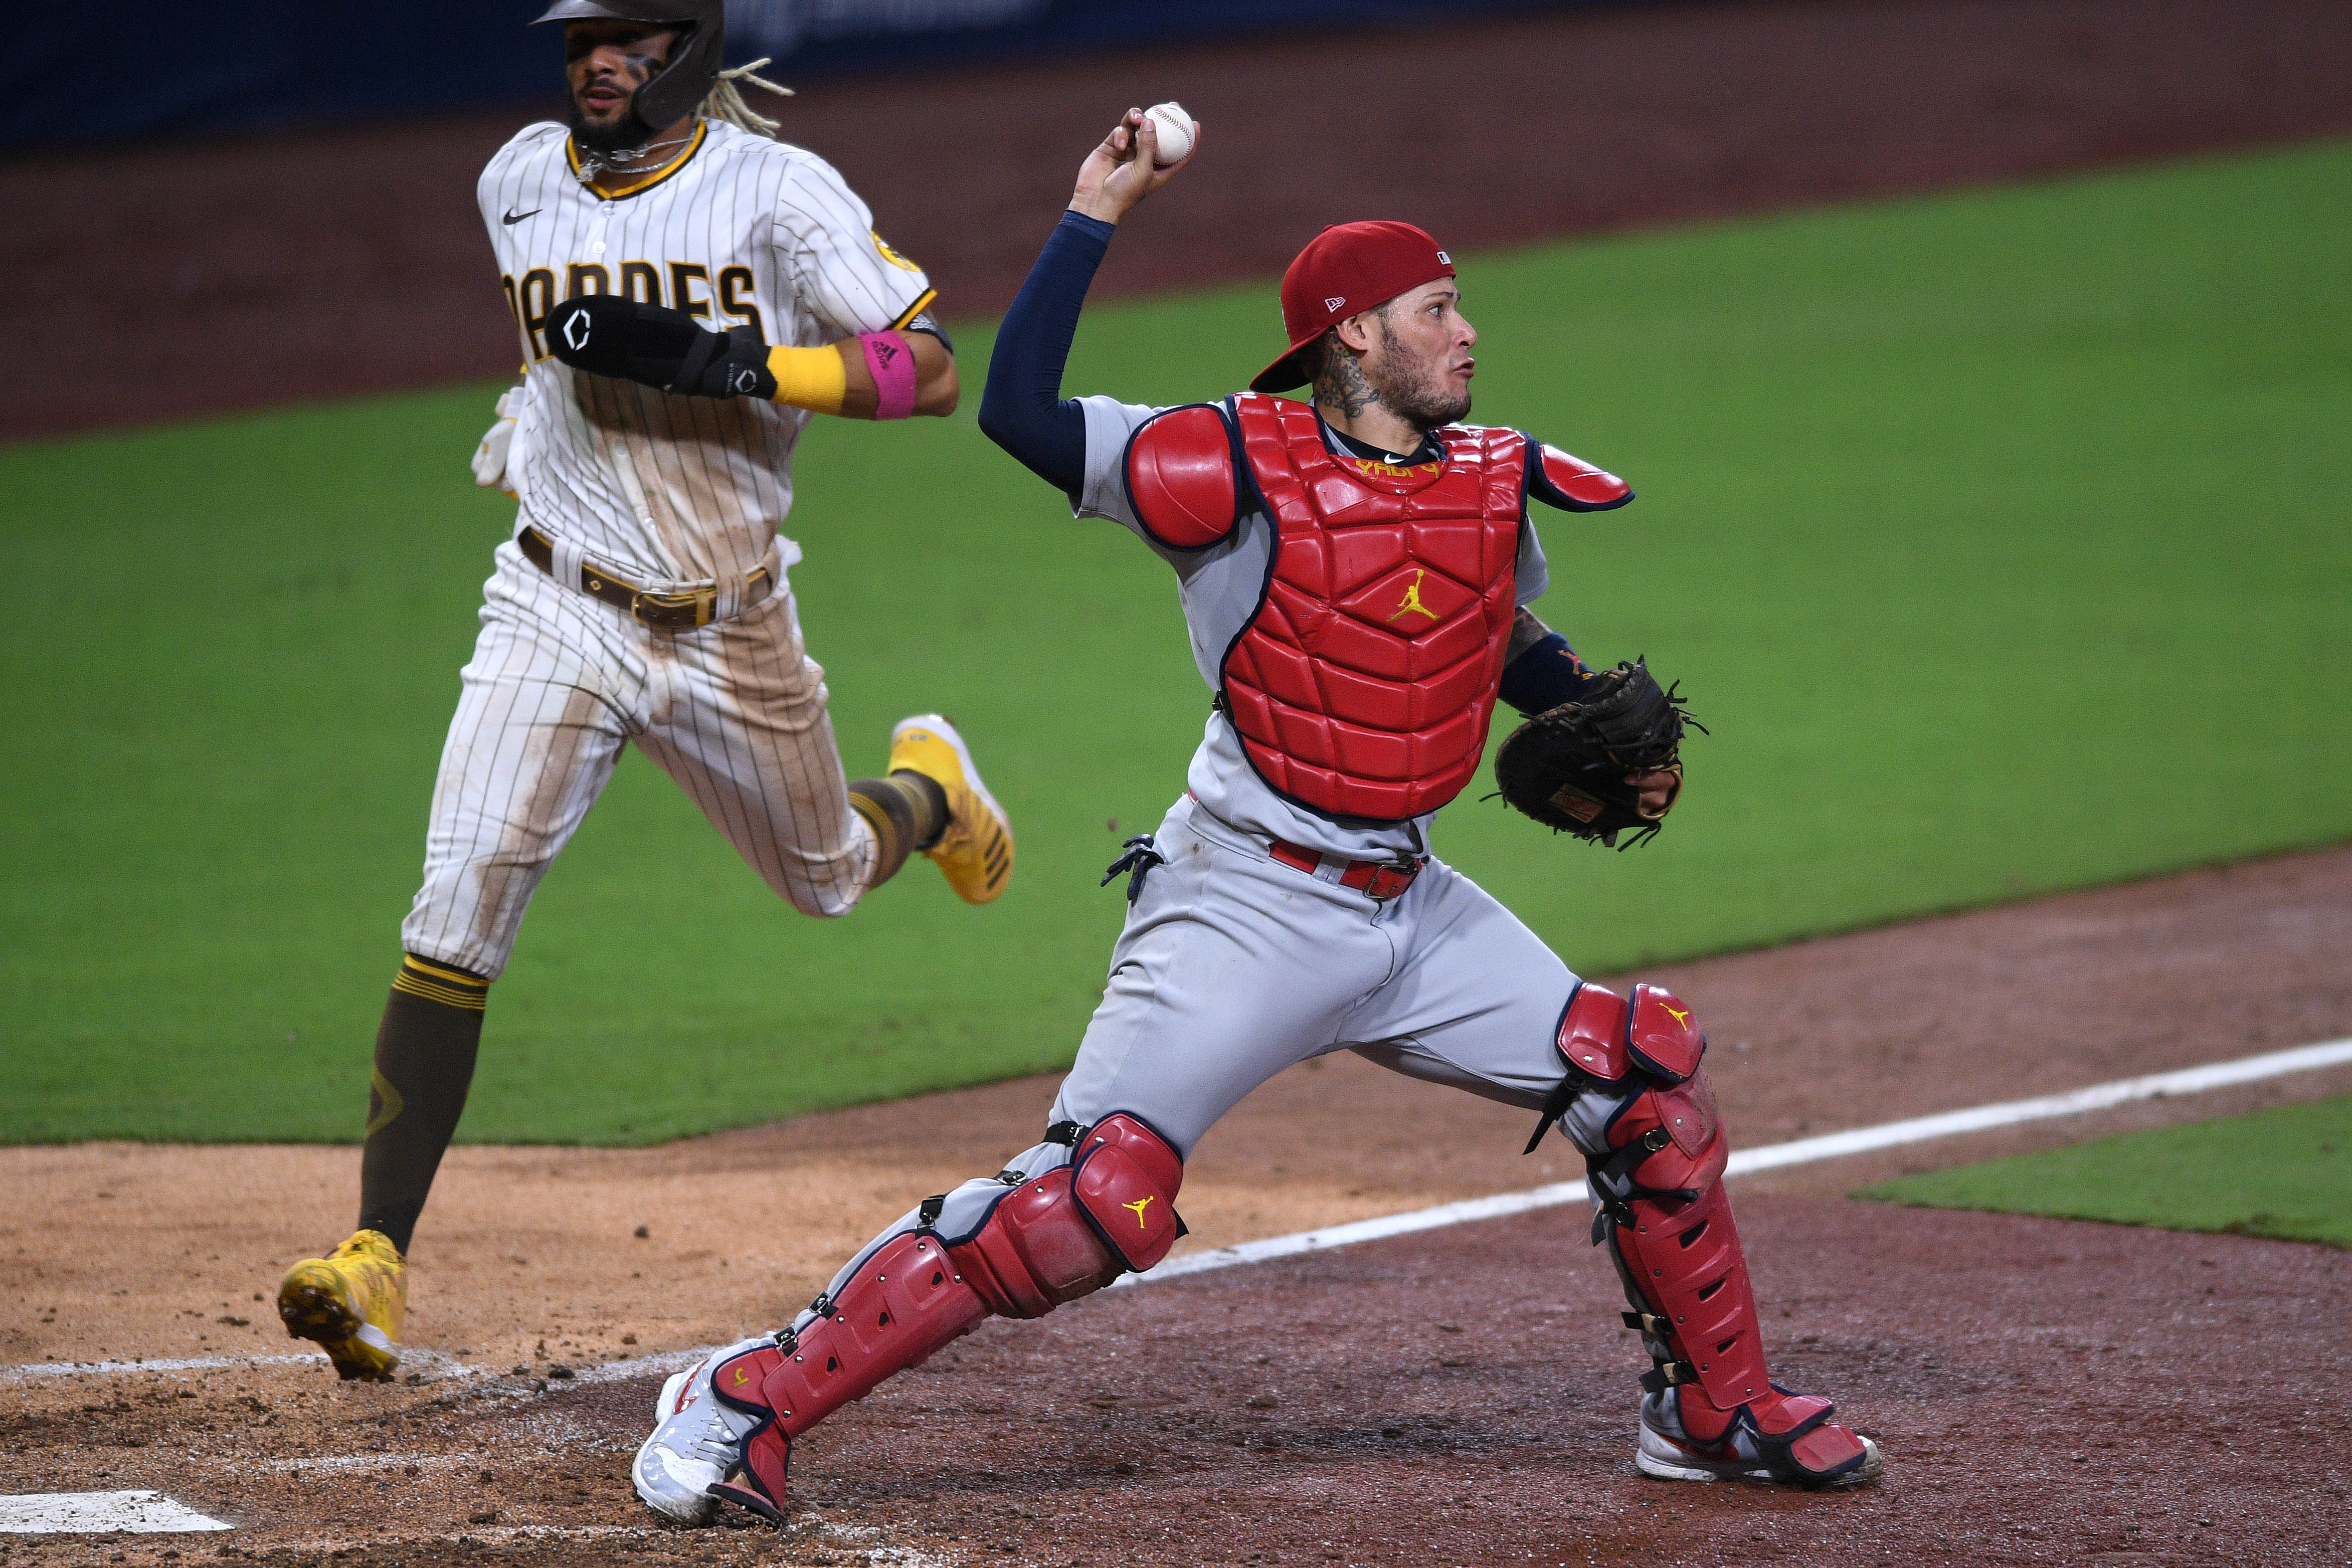 St. Louis Cardinals catcher Yadier Molina (right) throws to second base after forcing out San Diego Padres shortstop Fernando Tatis Jr. (left) at home during the seventh inning at Petco Park.